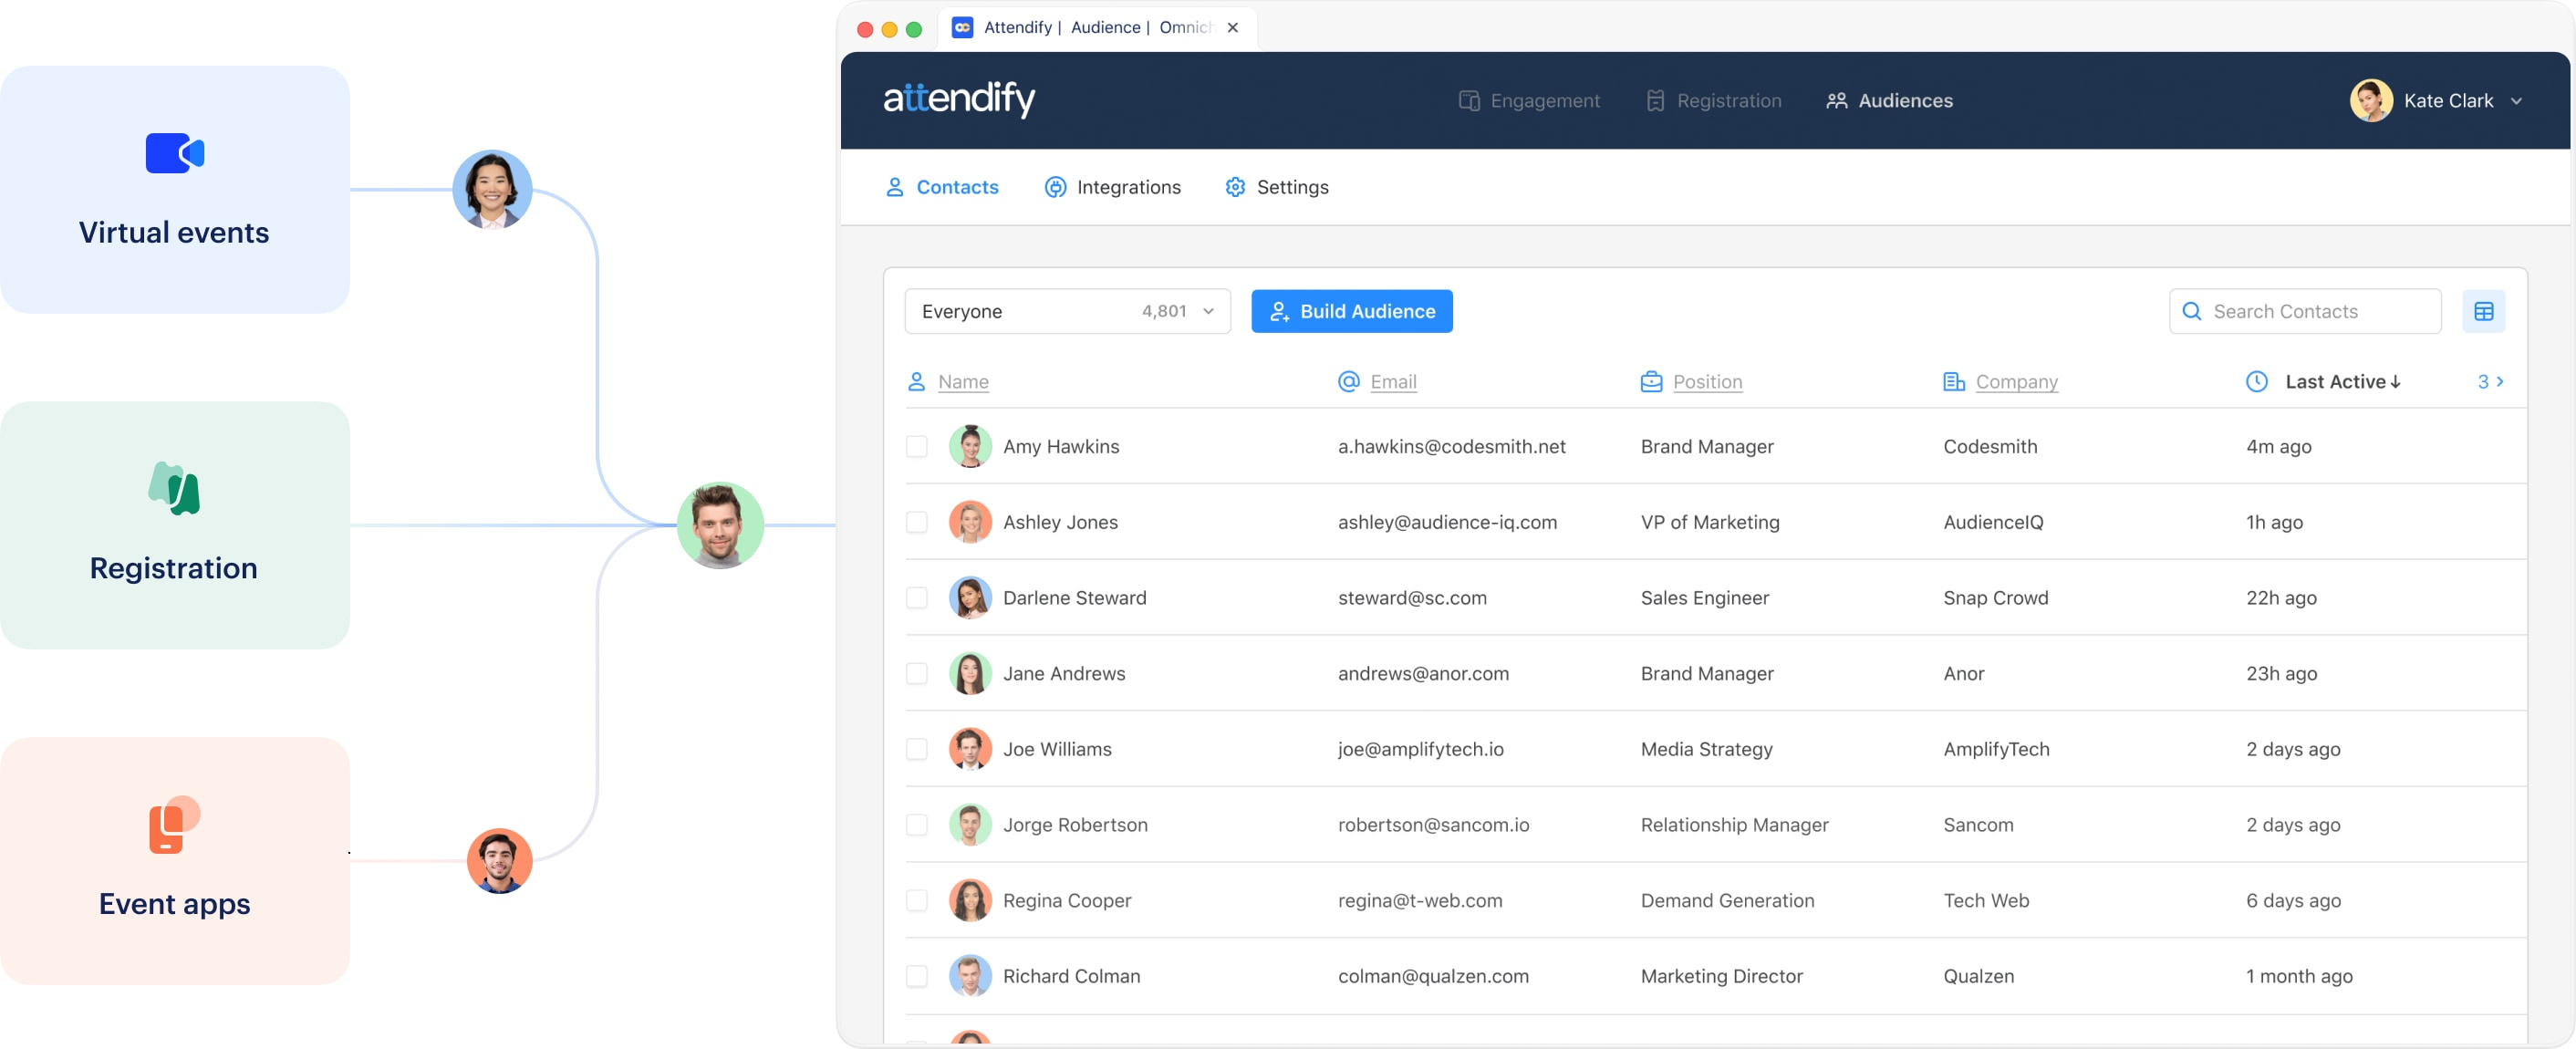 Attendify's built in data platform for marketing events